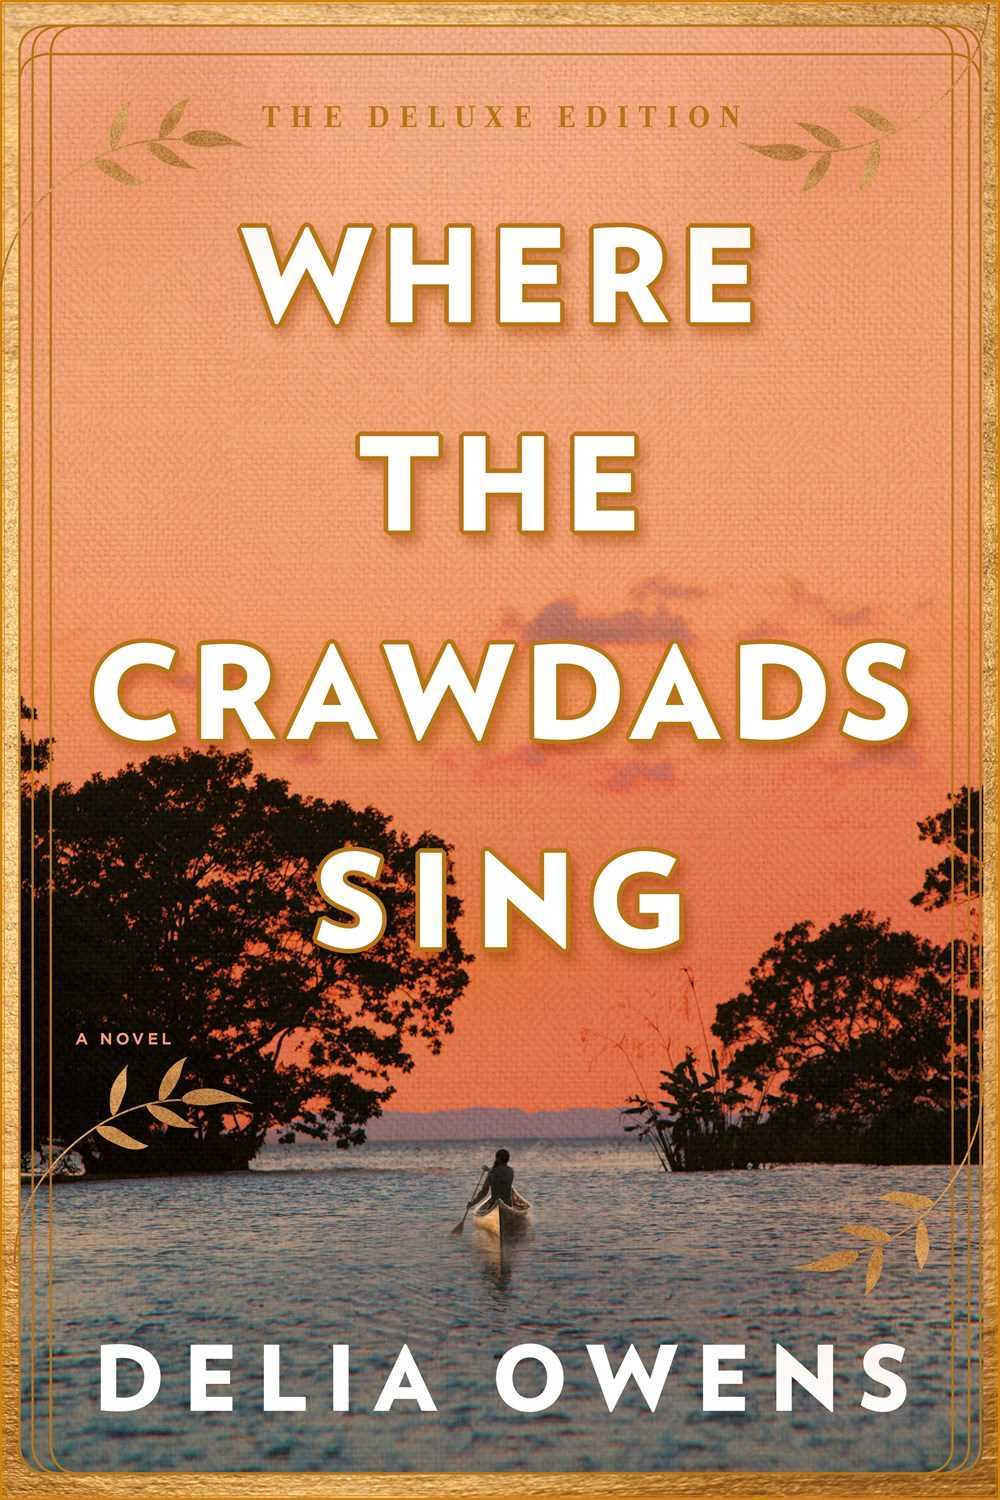 Where the Crawdads Sing (Deluxe Edition)